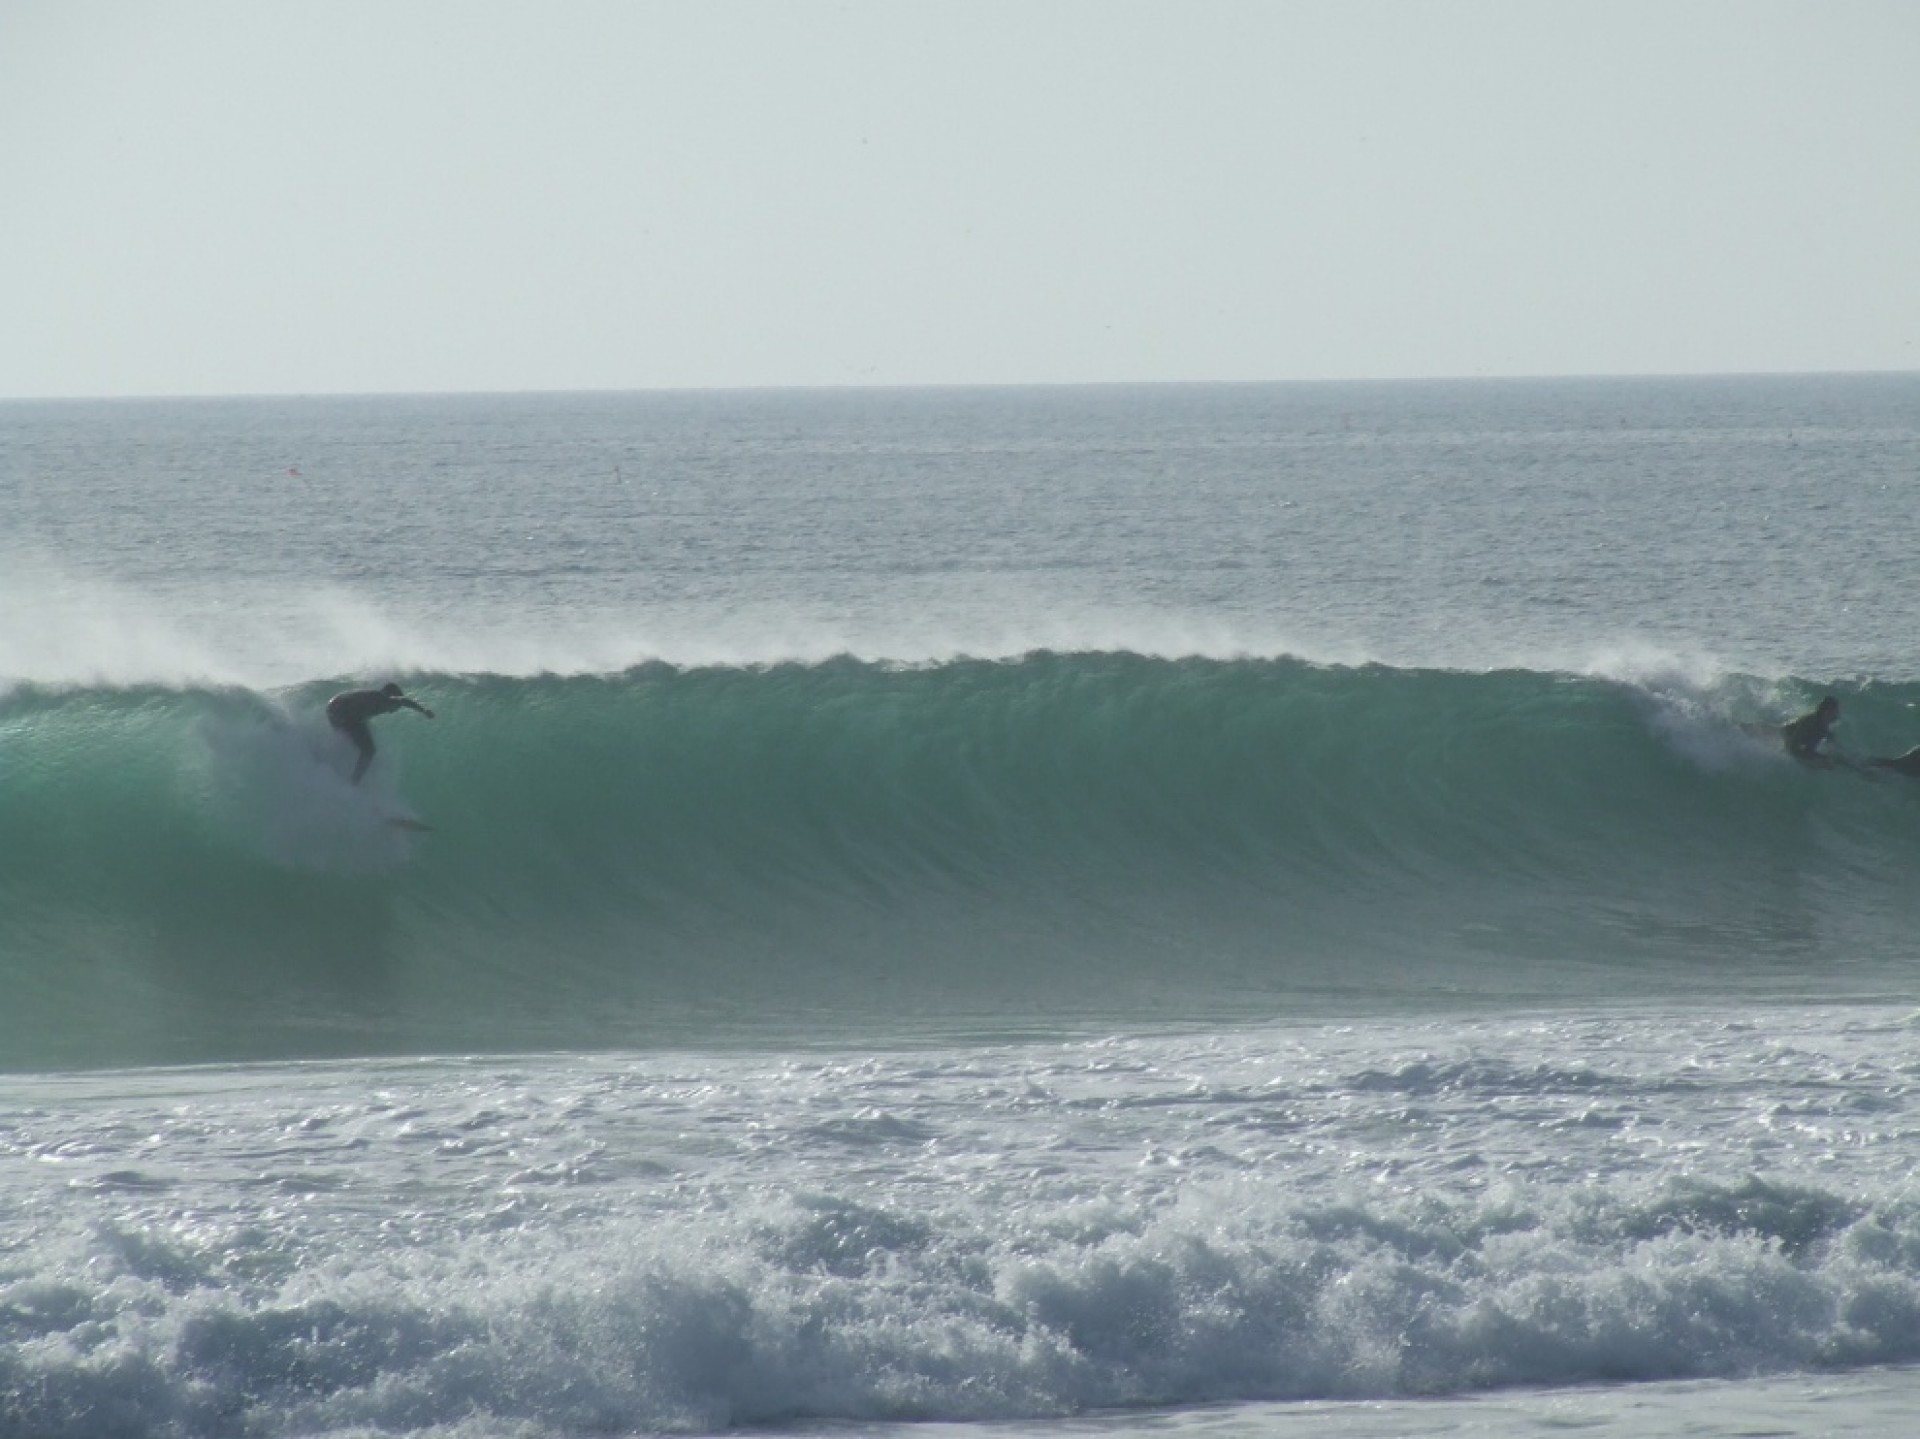 Peniche Surf Camp's photo of Supertubos